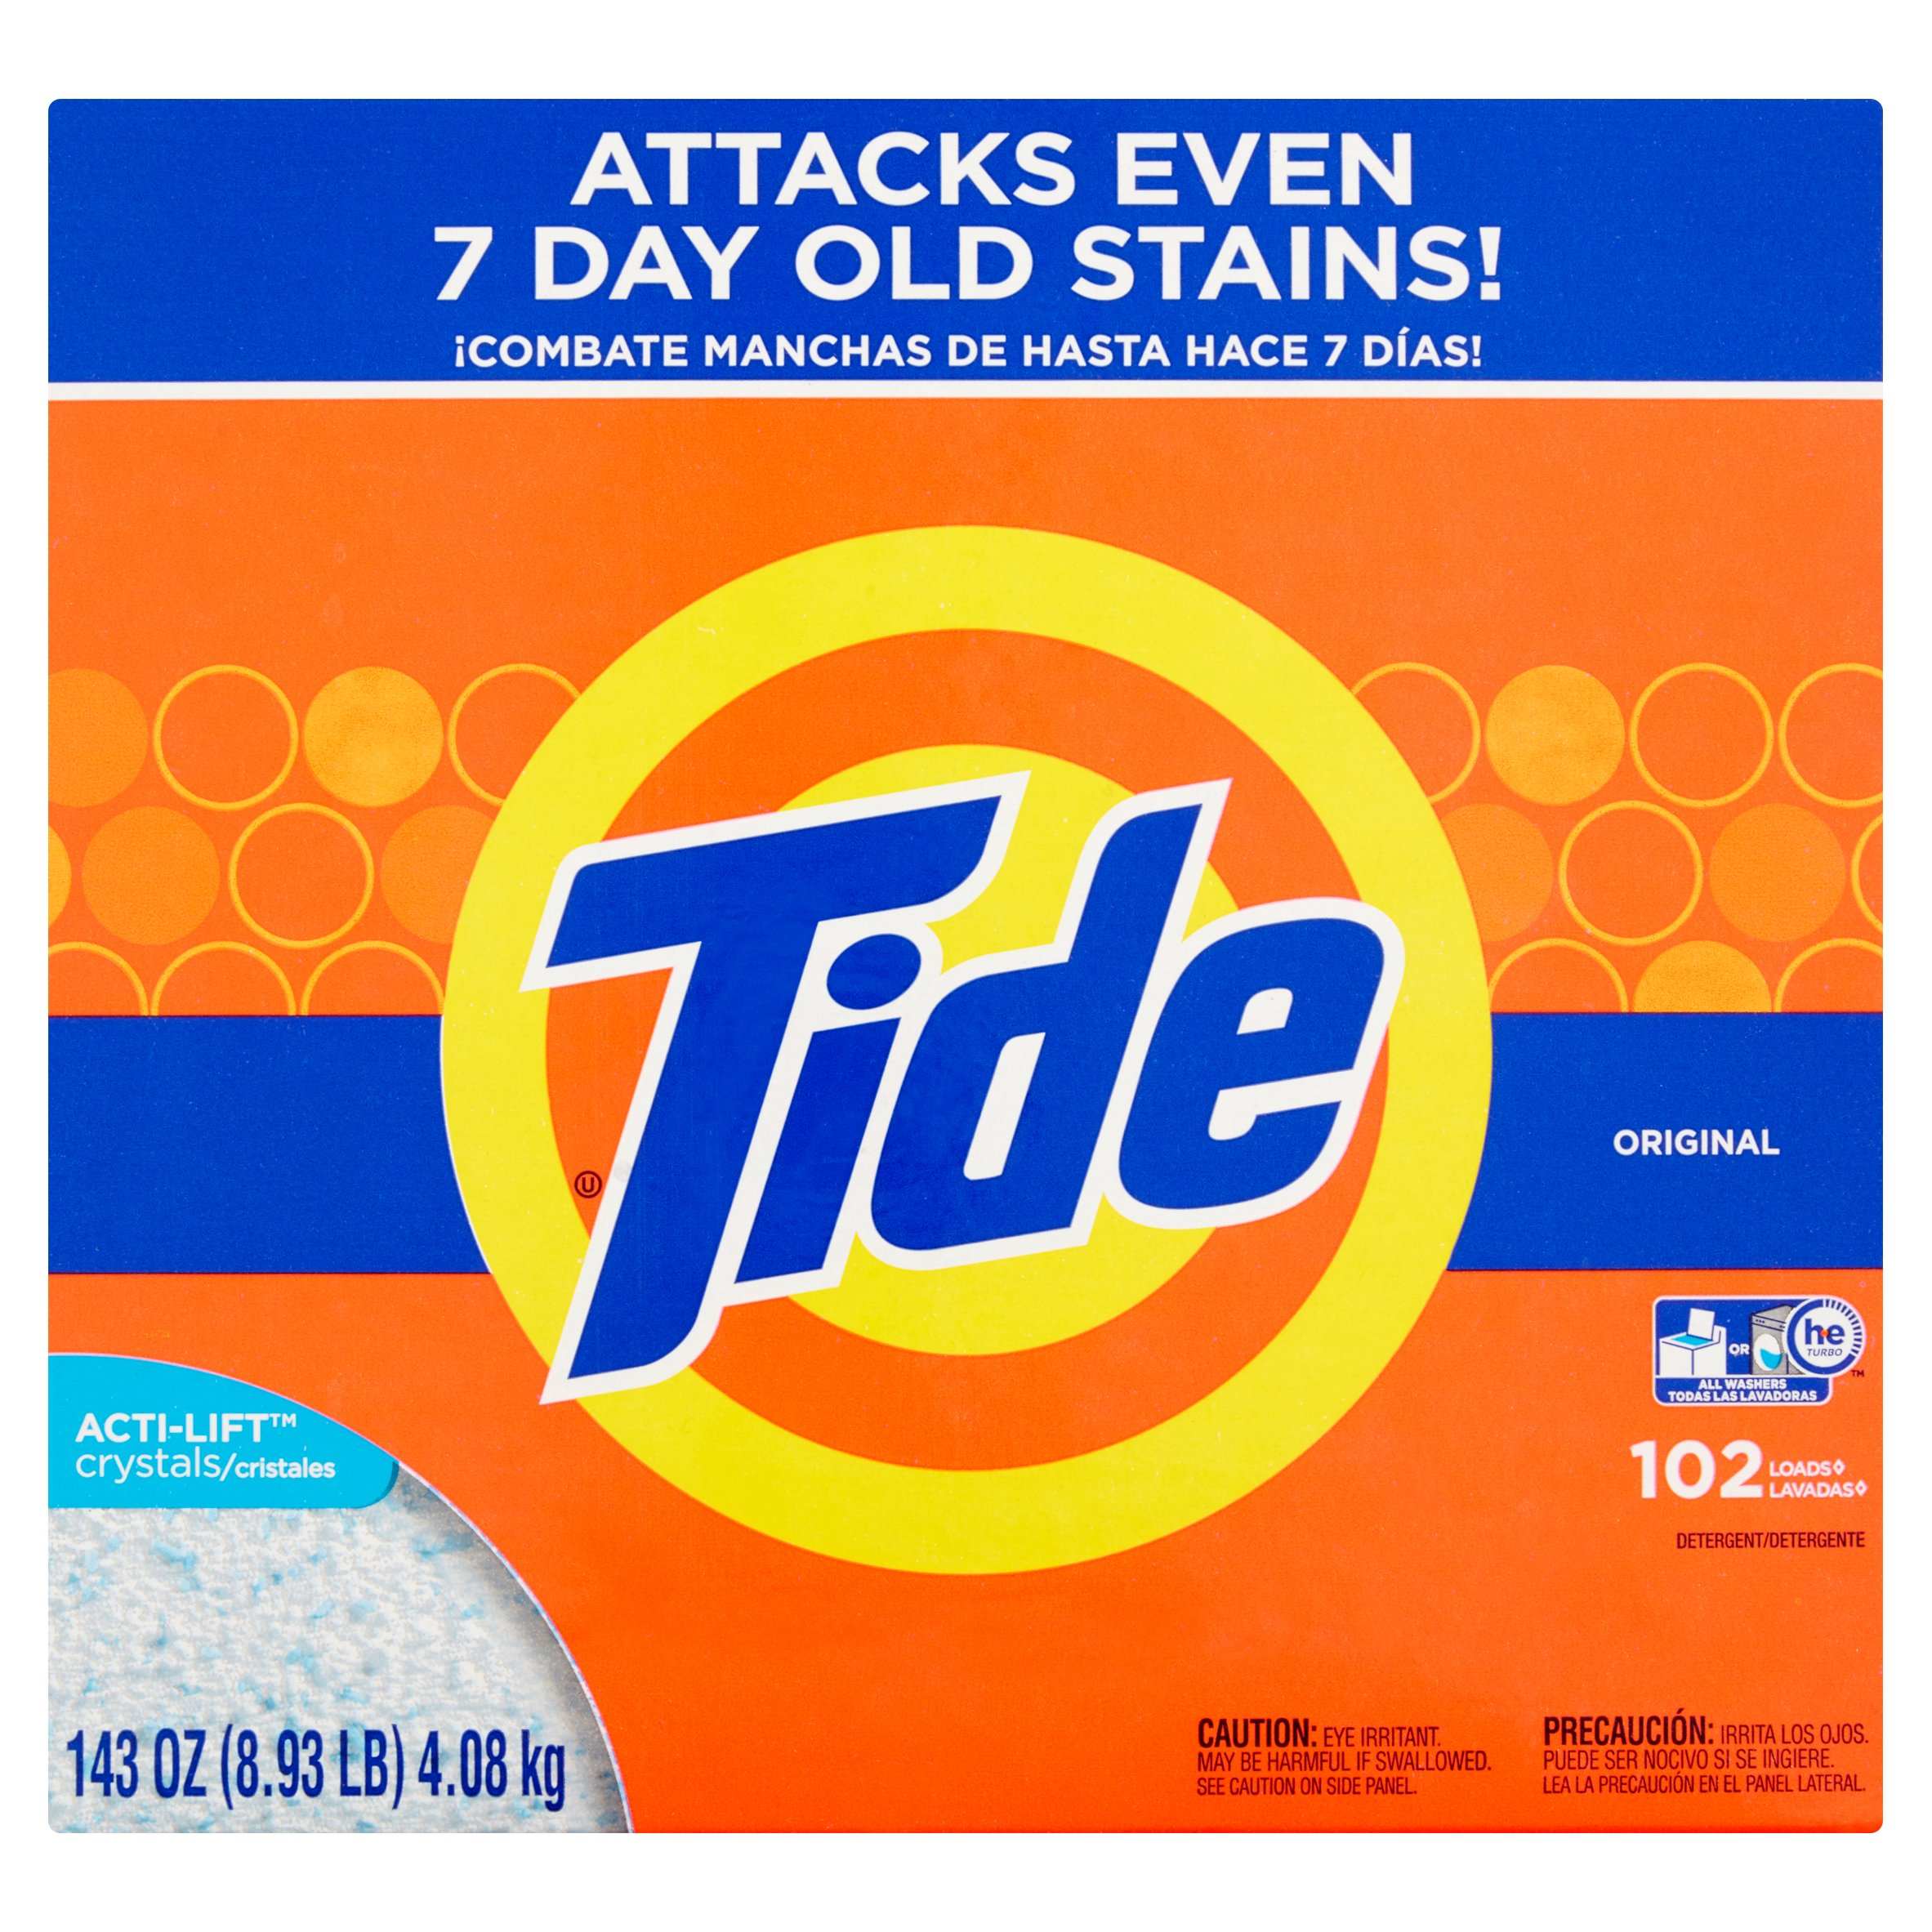 Is arm and hammer powder laundry detergent he - Tide He Turbo Powder Laundry Detergent Original Scent 102 Loads 143 Oz Walmart Com